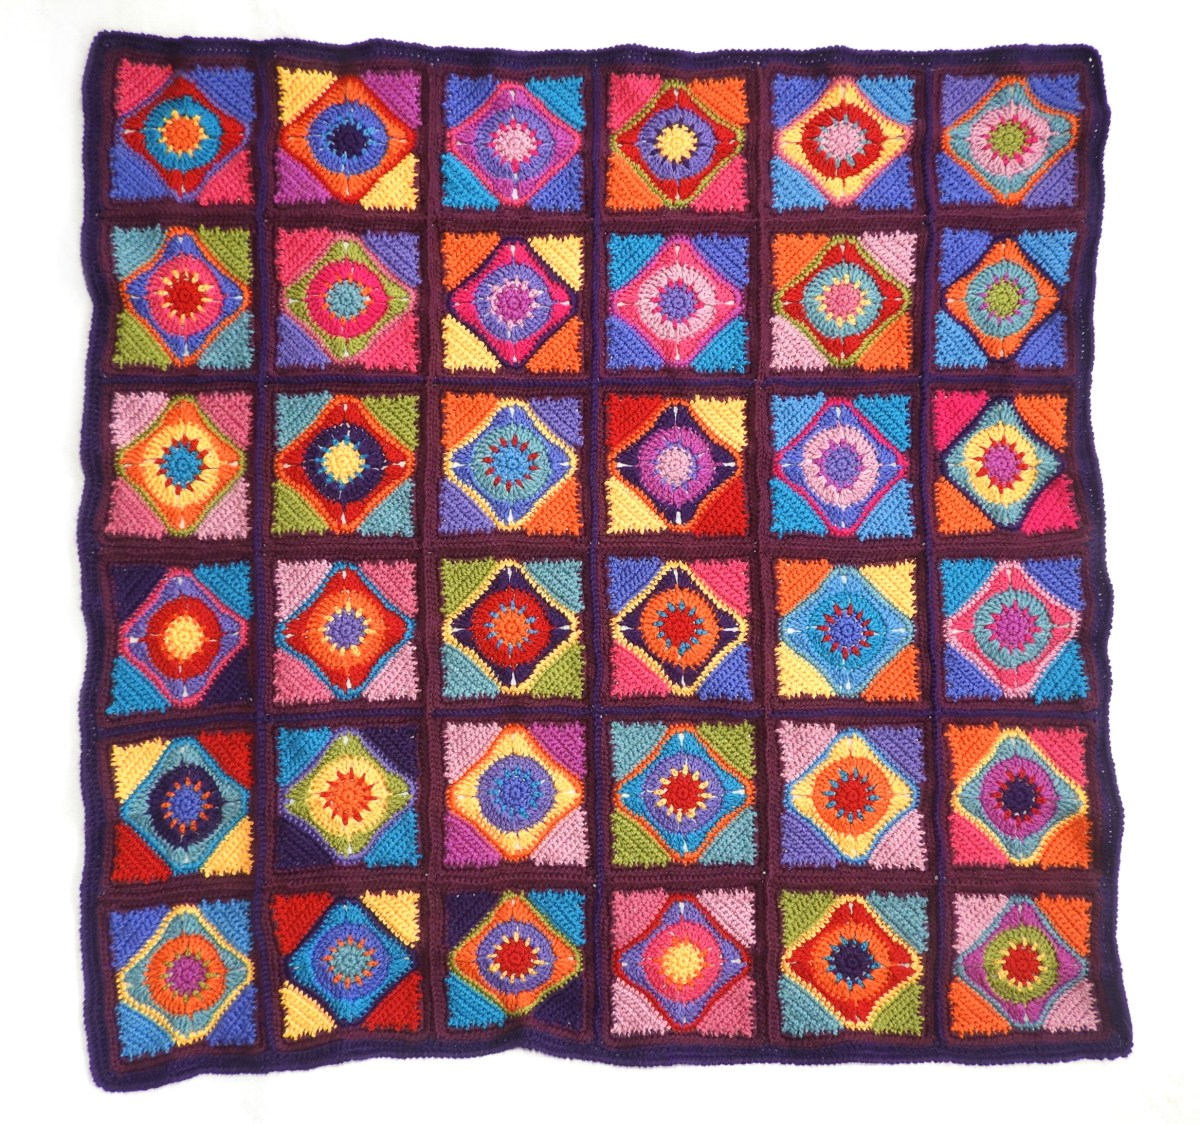 Stained Glass Diamond Motif Afghan Rug Crochet Pattern